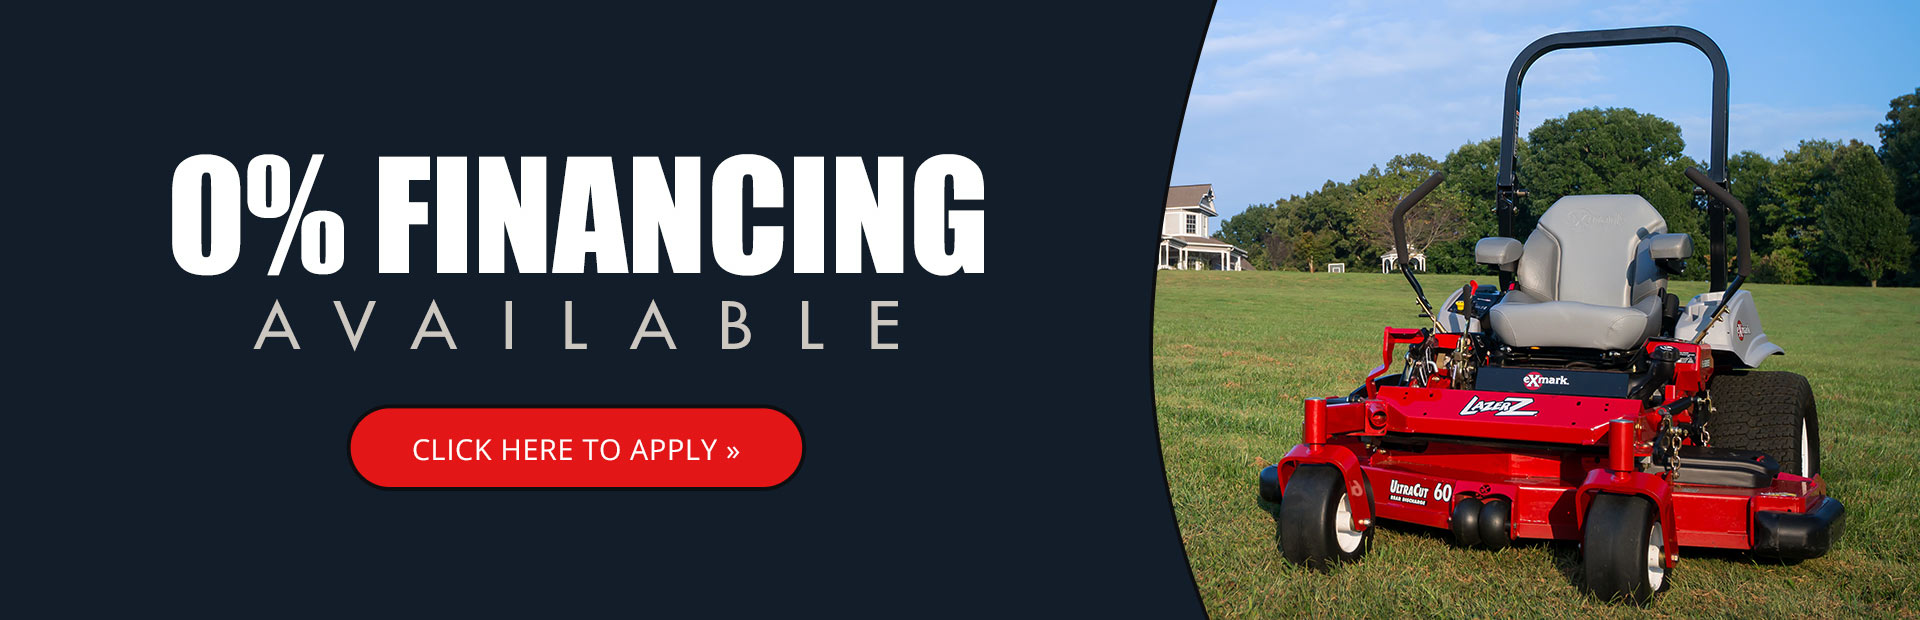 0% financing is available! Click here to apply.